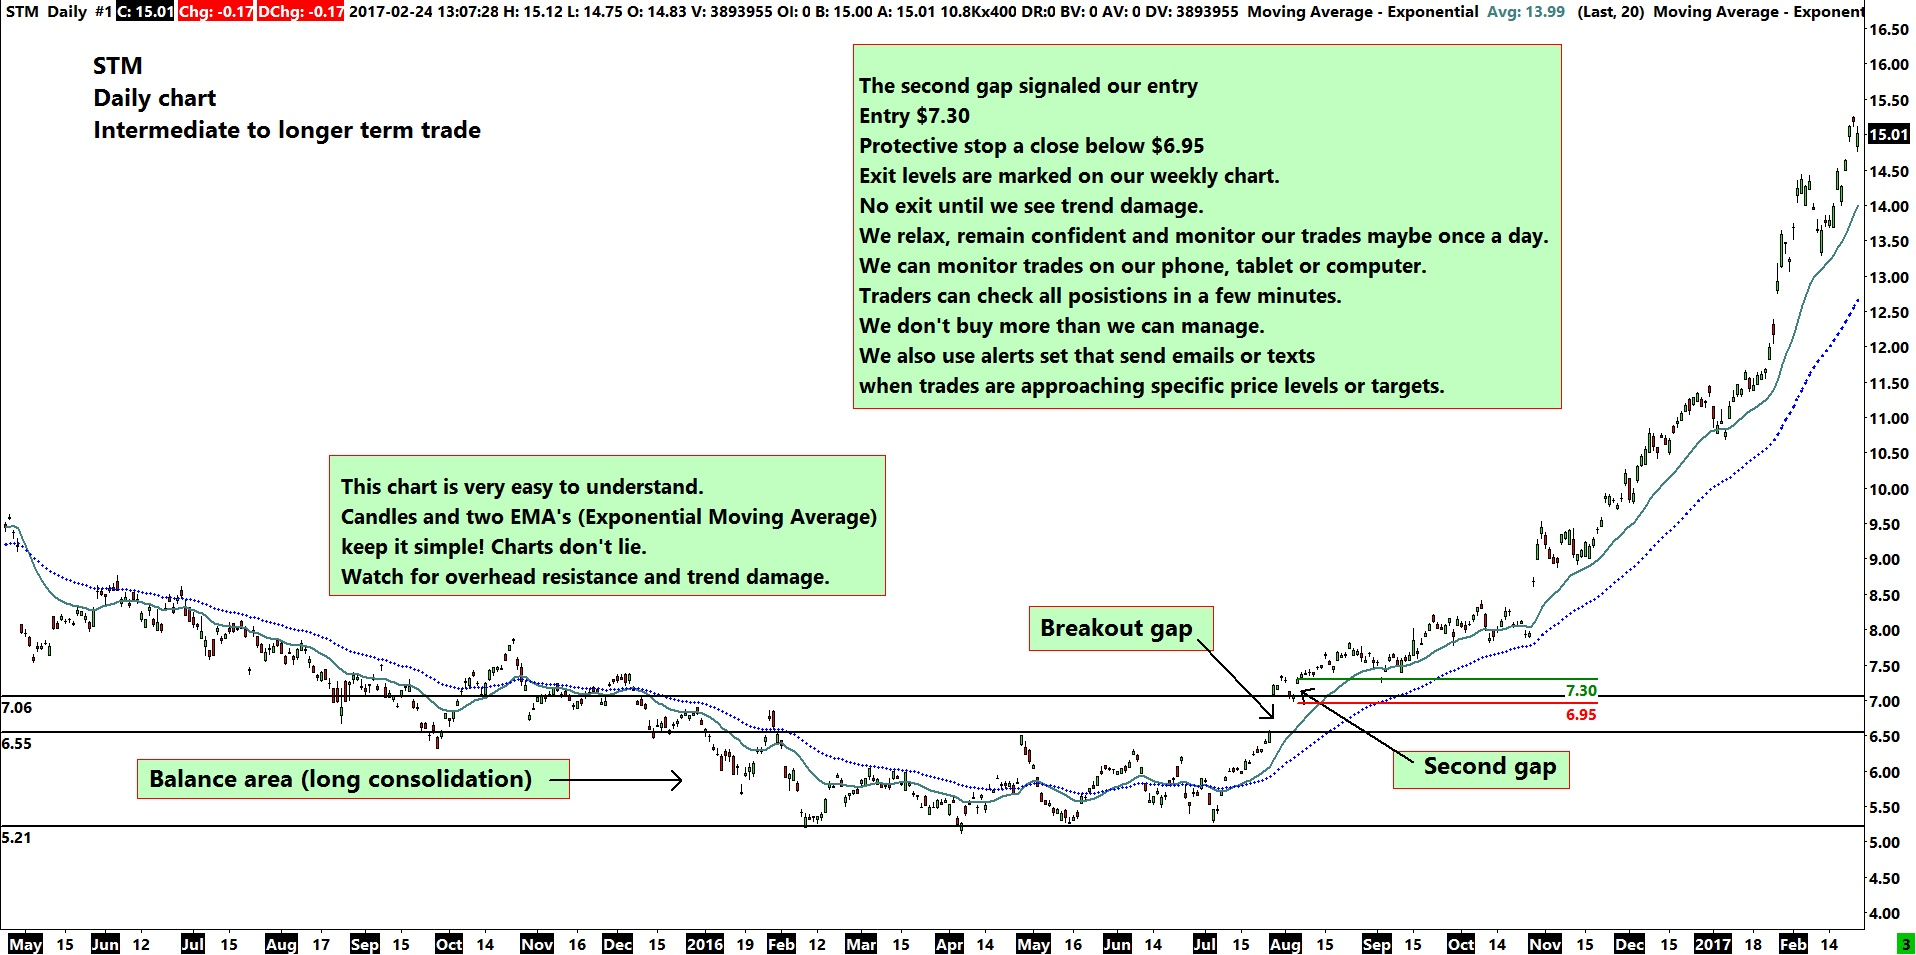 STM Daily Chart - Intermediate or Longer Term Trade